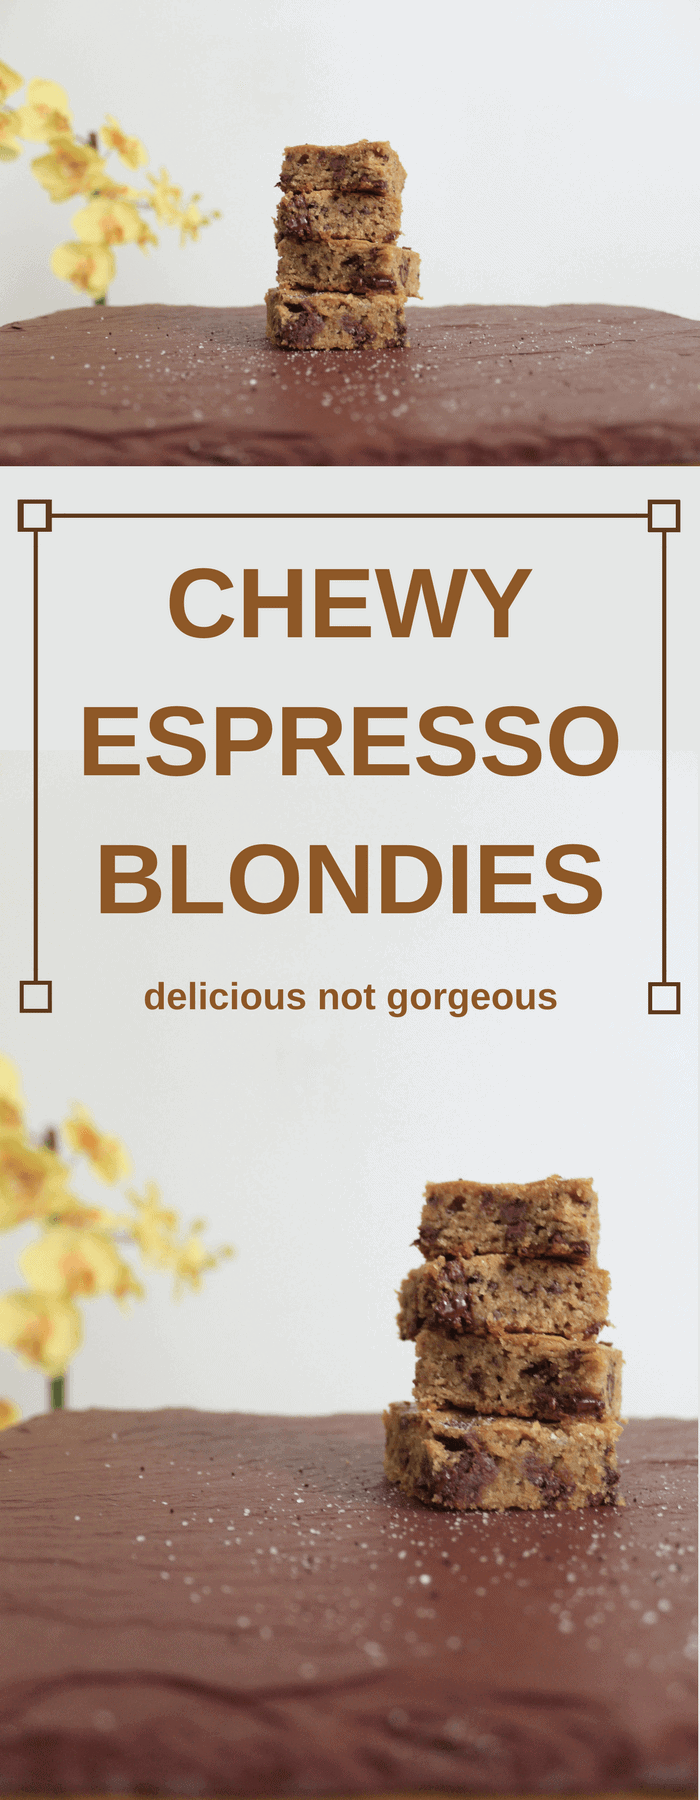 These chewy espresso blondies are as chewy as they sound, with no cakey texture in sight. #espresso #chocolate #blondies #dessert